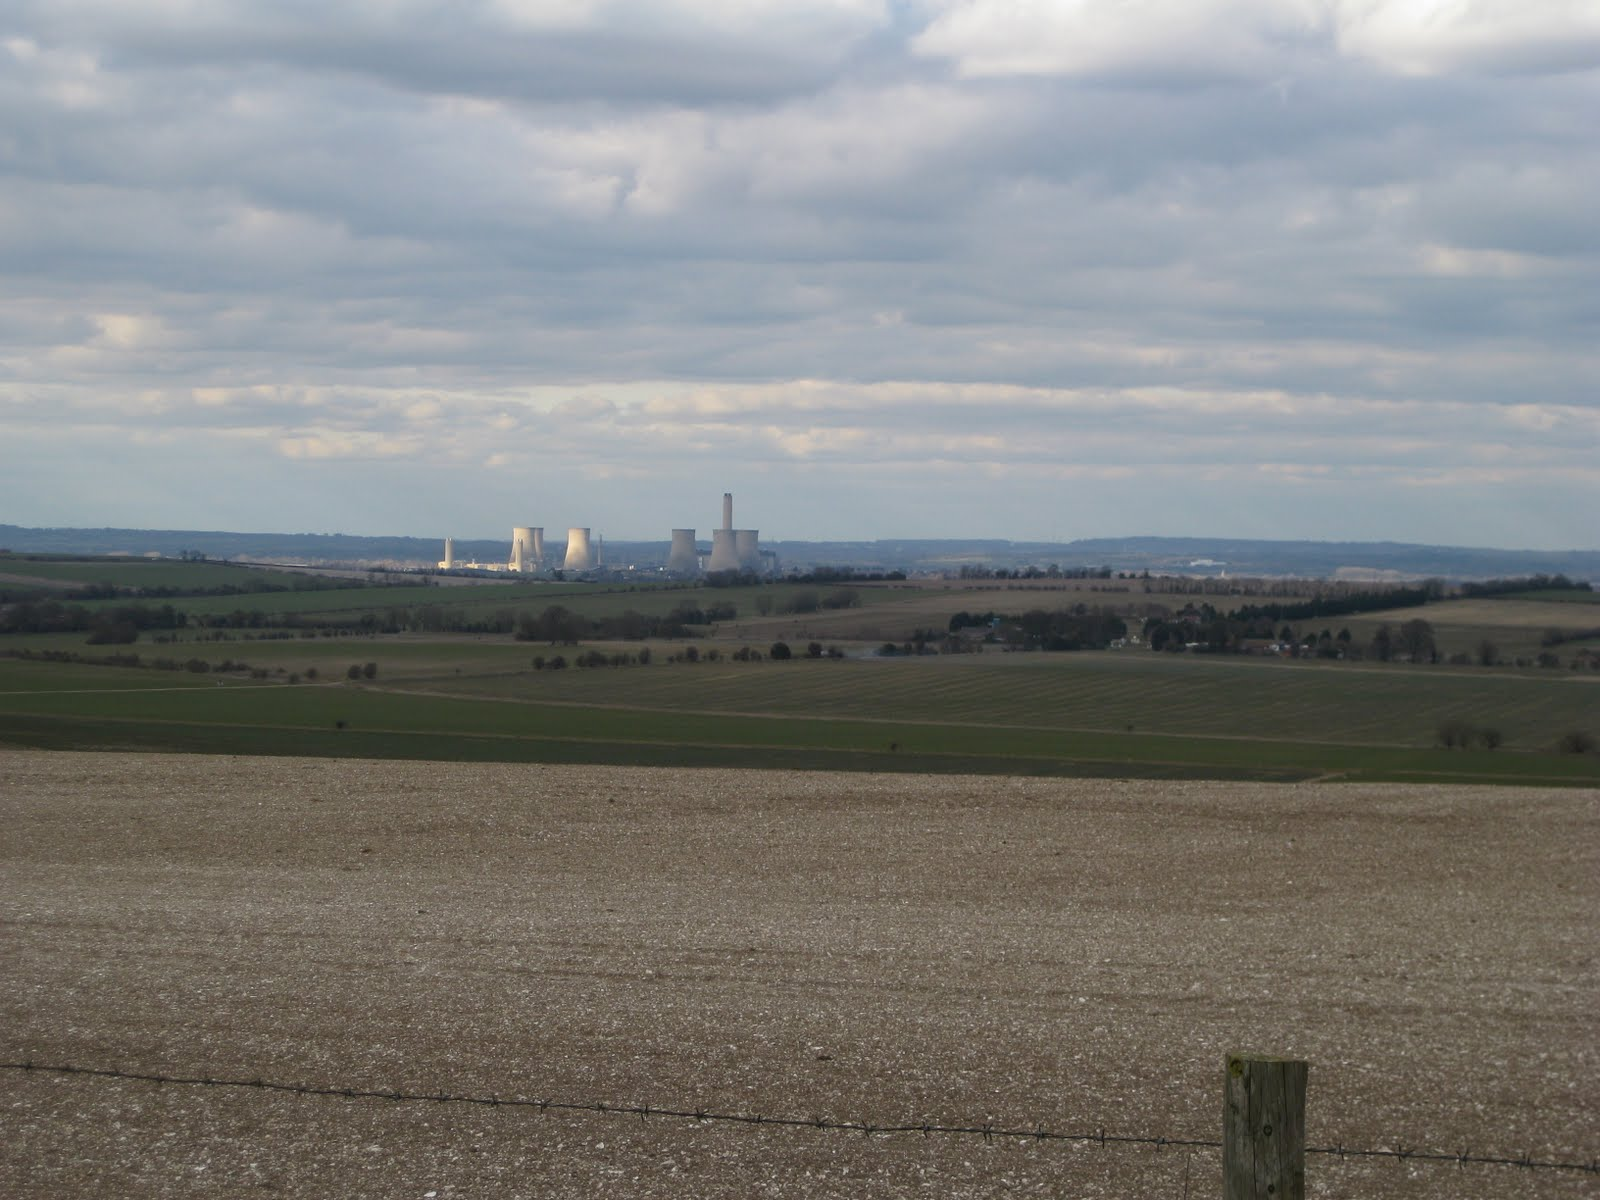 OK, the power station does spoil the view a little